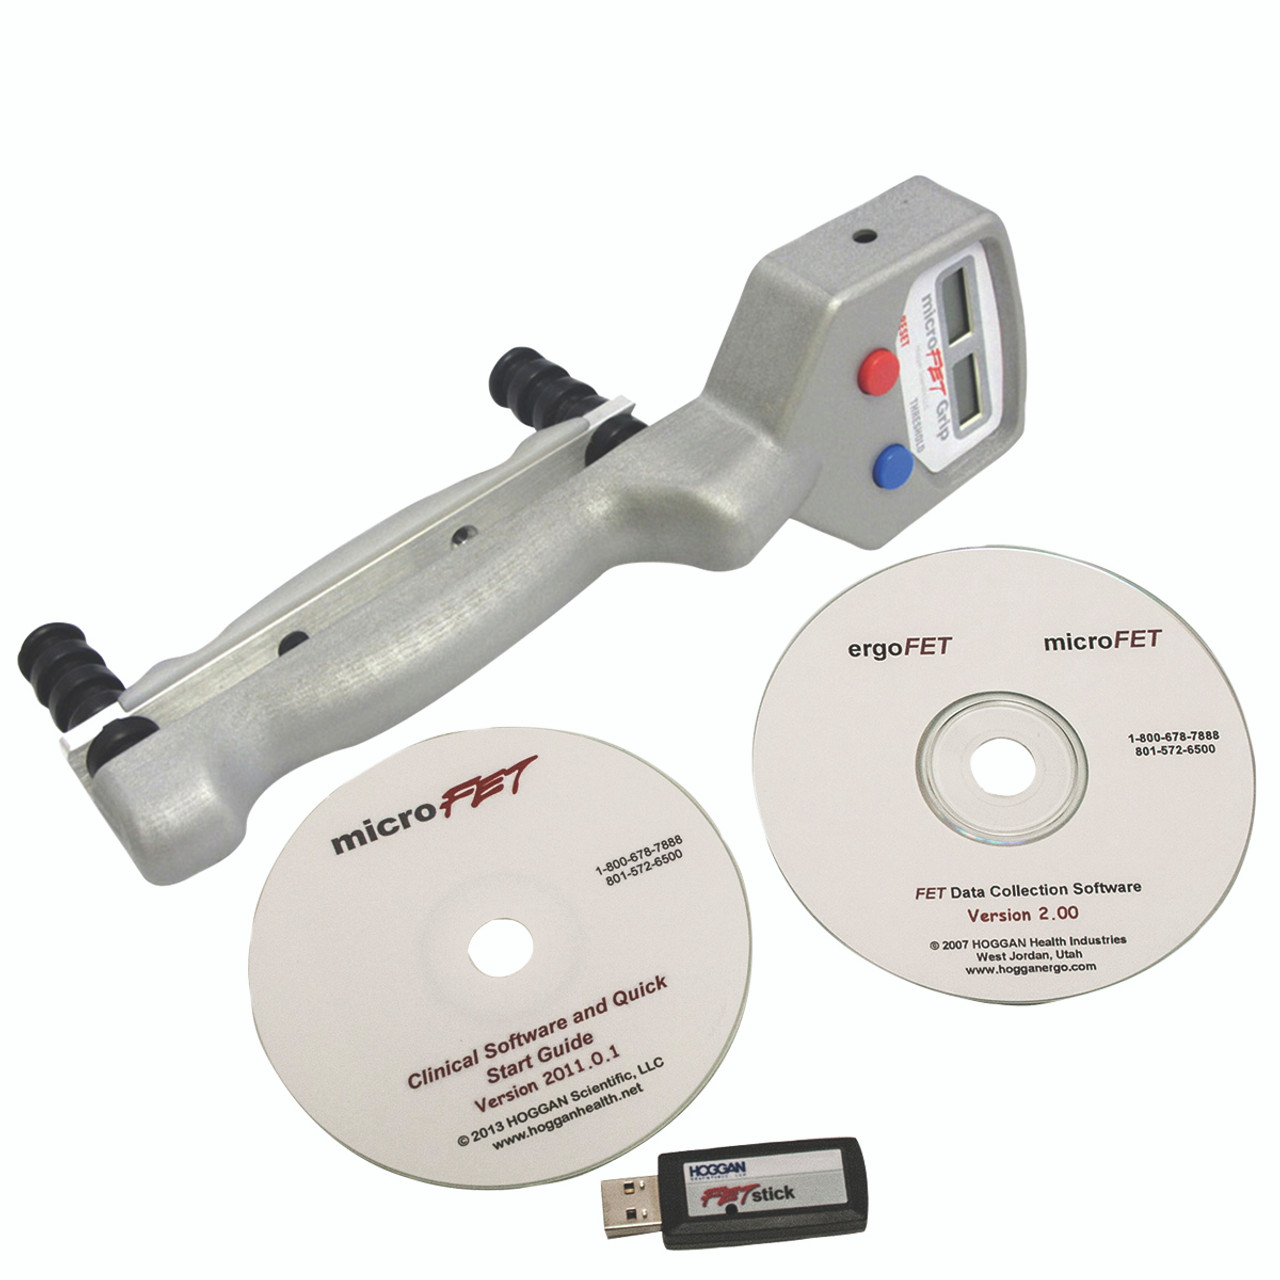 MicroFETª HandGRIP - Wireless with Clinical and Data Collection Software